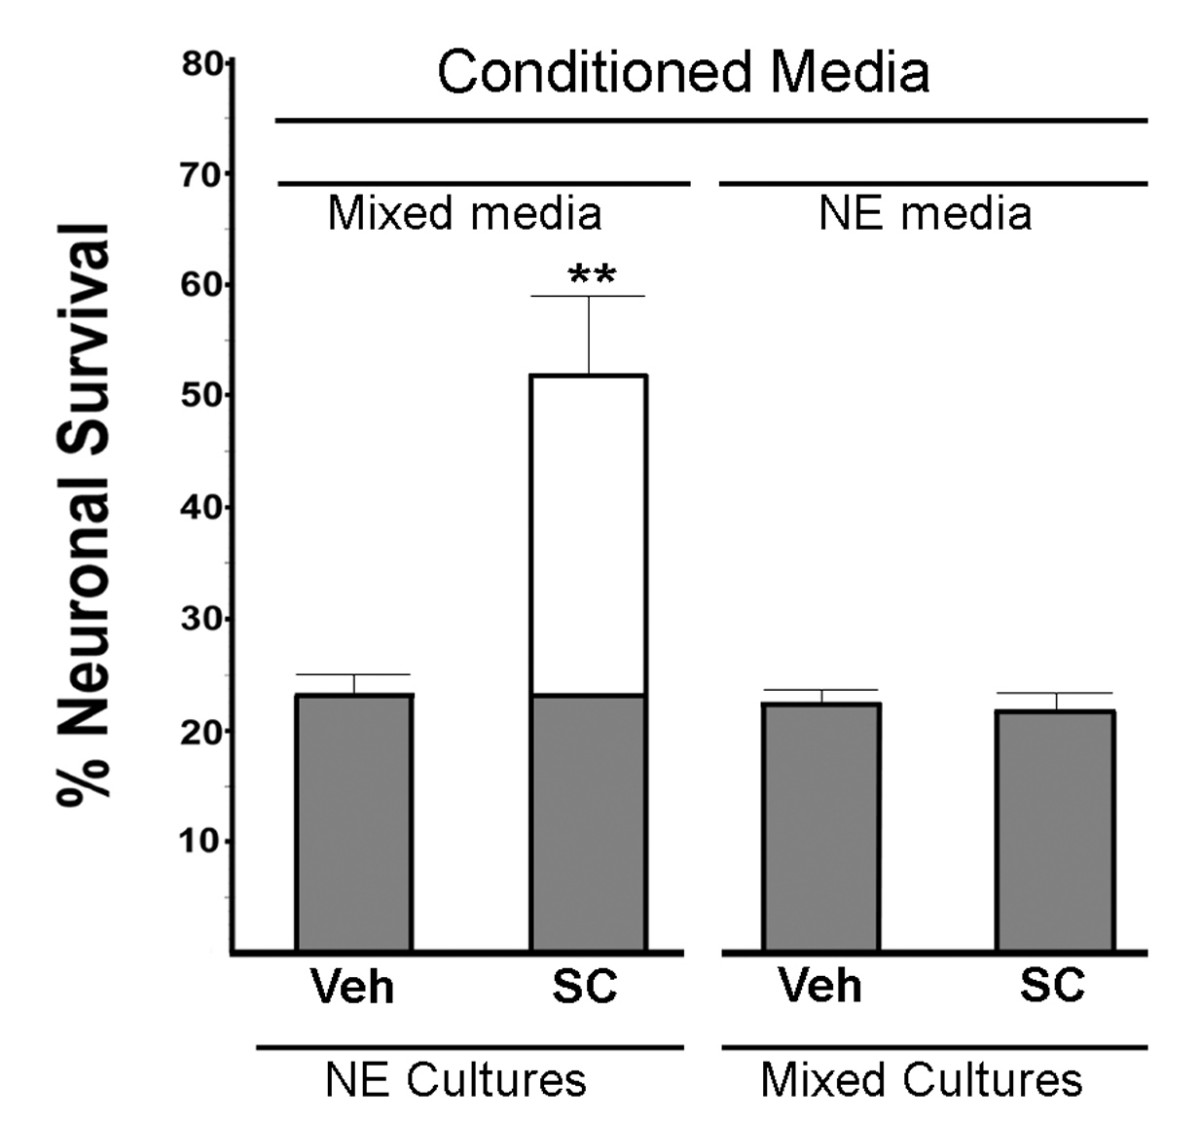 https://static-content.springer.com/image/art%3A10.1186%2F1742-2094-6-5/MediaObjects/12974_2008_Article_175_Fig4_HTML.jpg